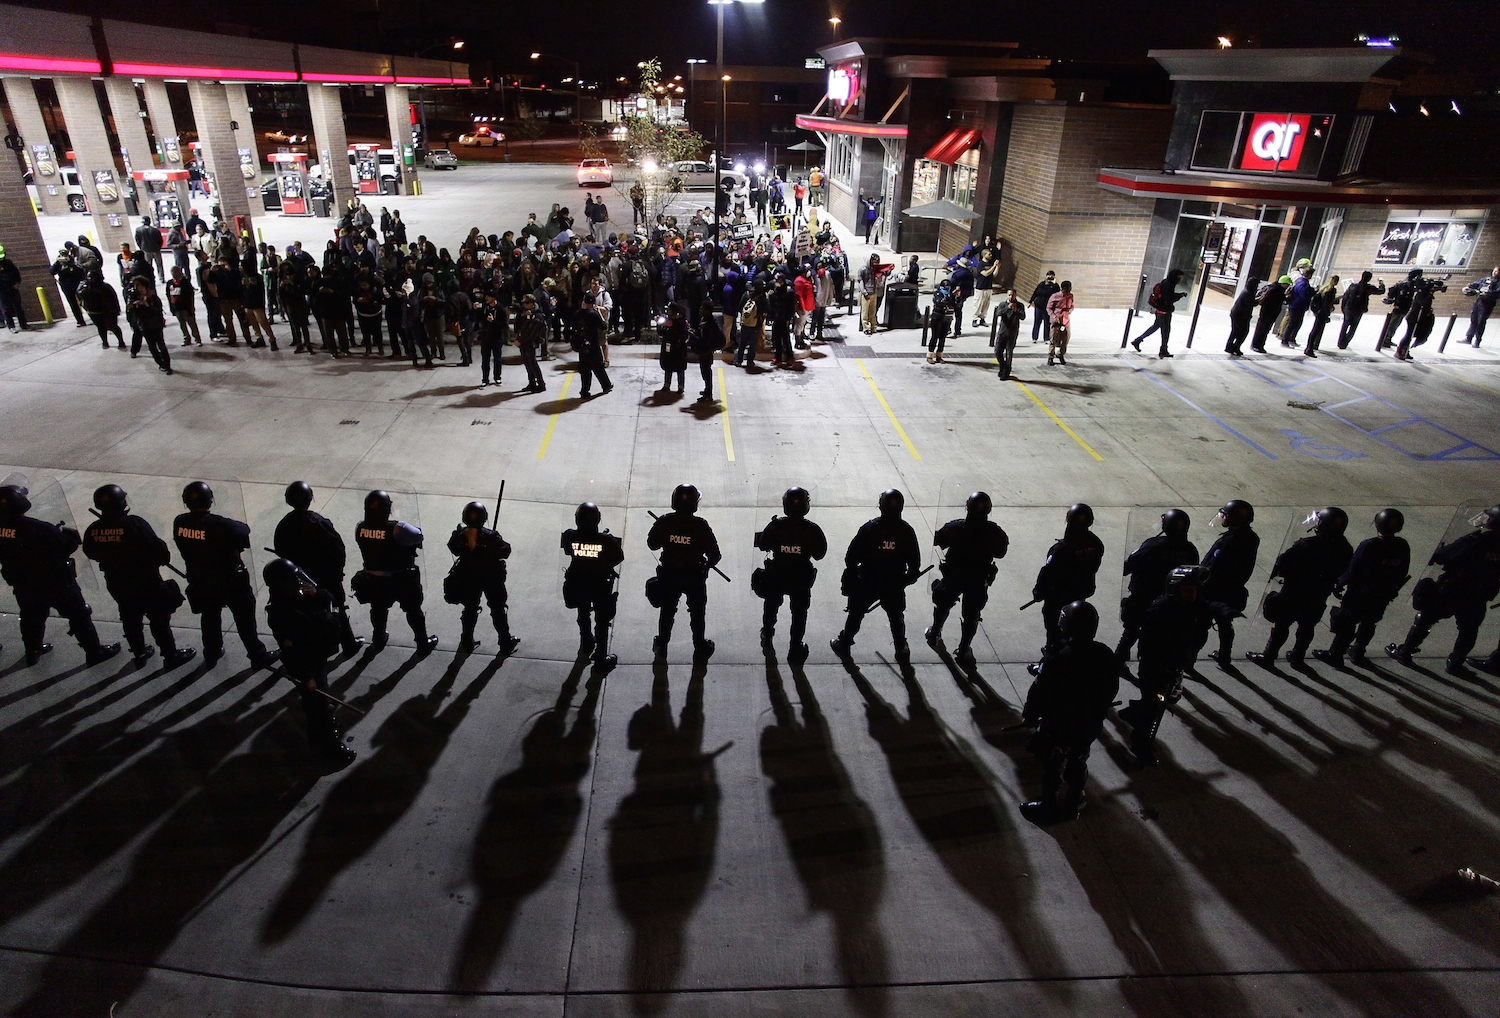 Police officers in riot gear hold a line as they watch demonstrators protest  the shooting death of Michael Brown and 18-year-old Vonderrit Myers Jr. at a QuikTrip convince store and gas station October, 12 2014 in St. Louis, Missouri. Civil rights organizations, protest groups and people from around the country were protesting the August 9 shooting of Brown, which involved Ferguson Police officer Darren Wilson and Meyers, who was shot and killed last week by an off duty St. Louis police officer.    AFP PHOTO/Joshua Lott        (Photo credit should read Joshua LOTT/AFP/Getty Images)